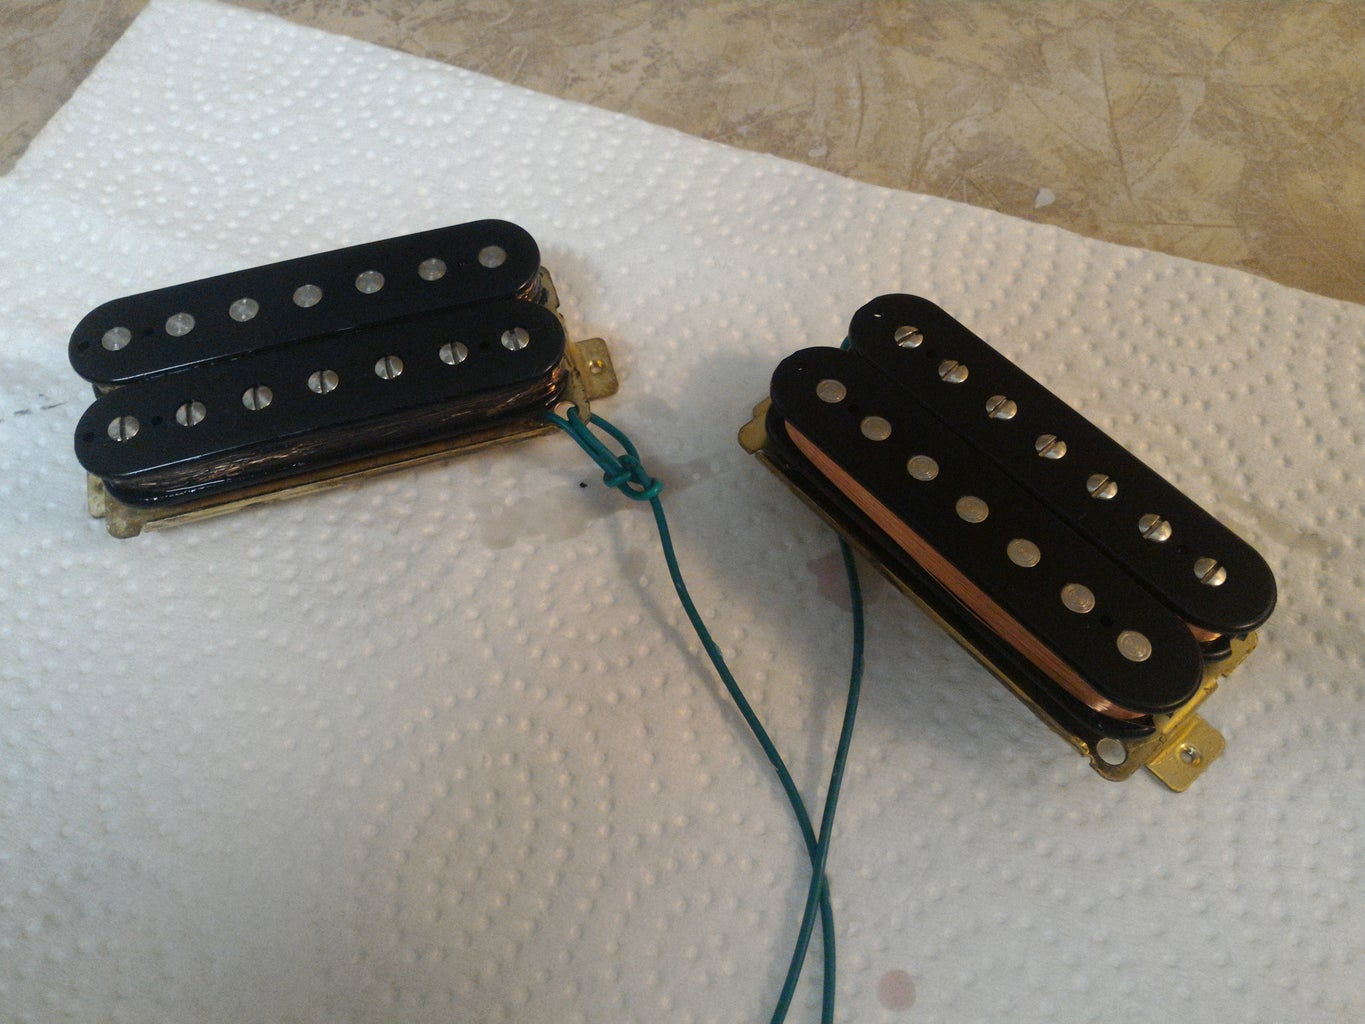 Misc Hardware and Pickups